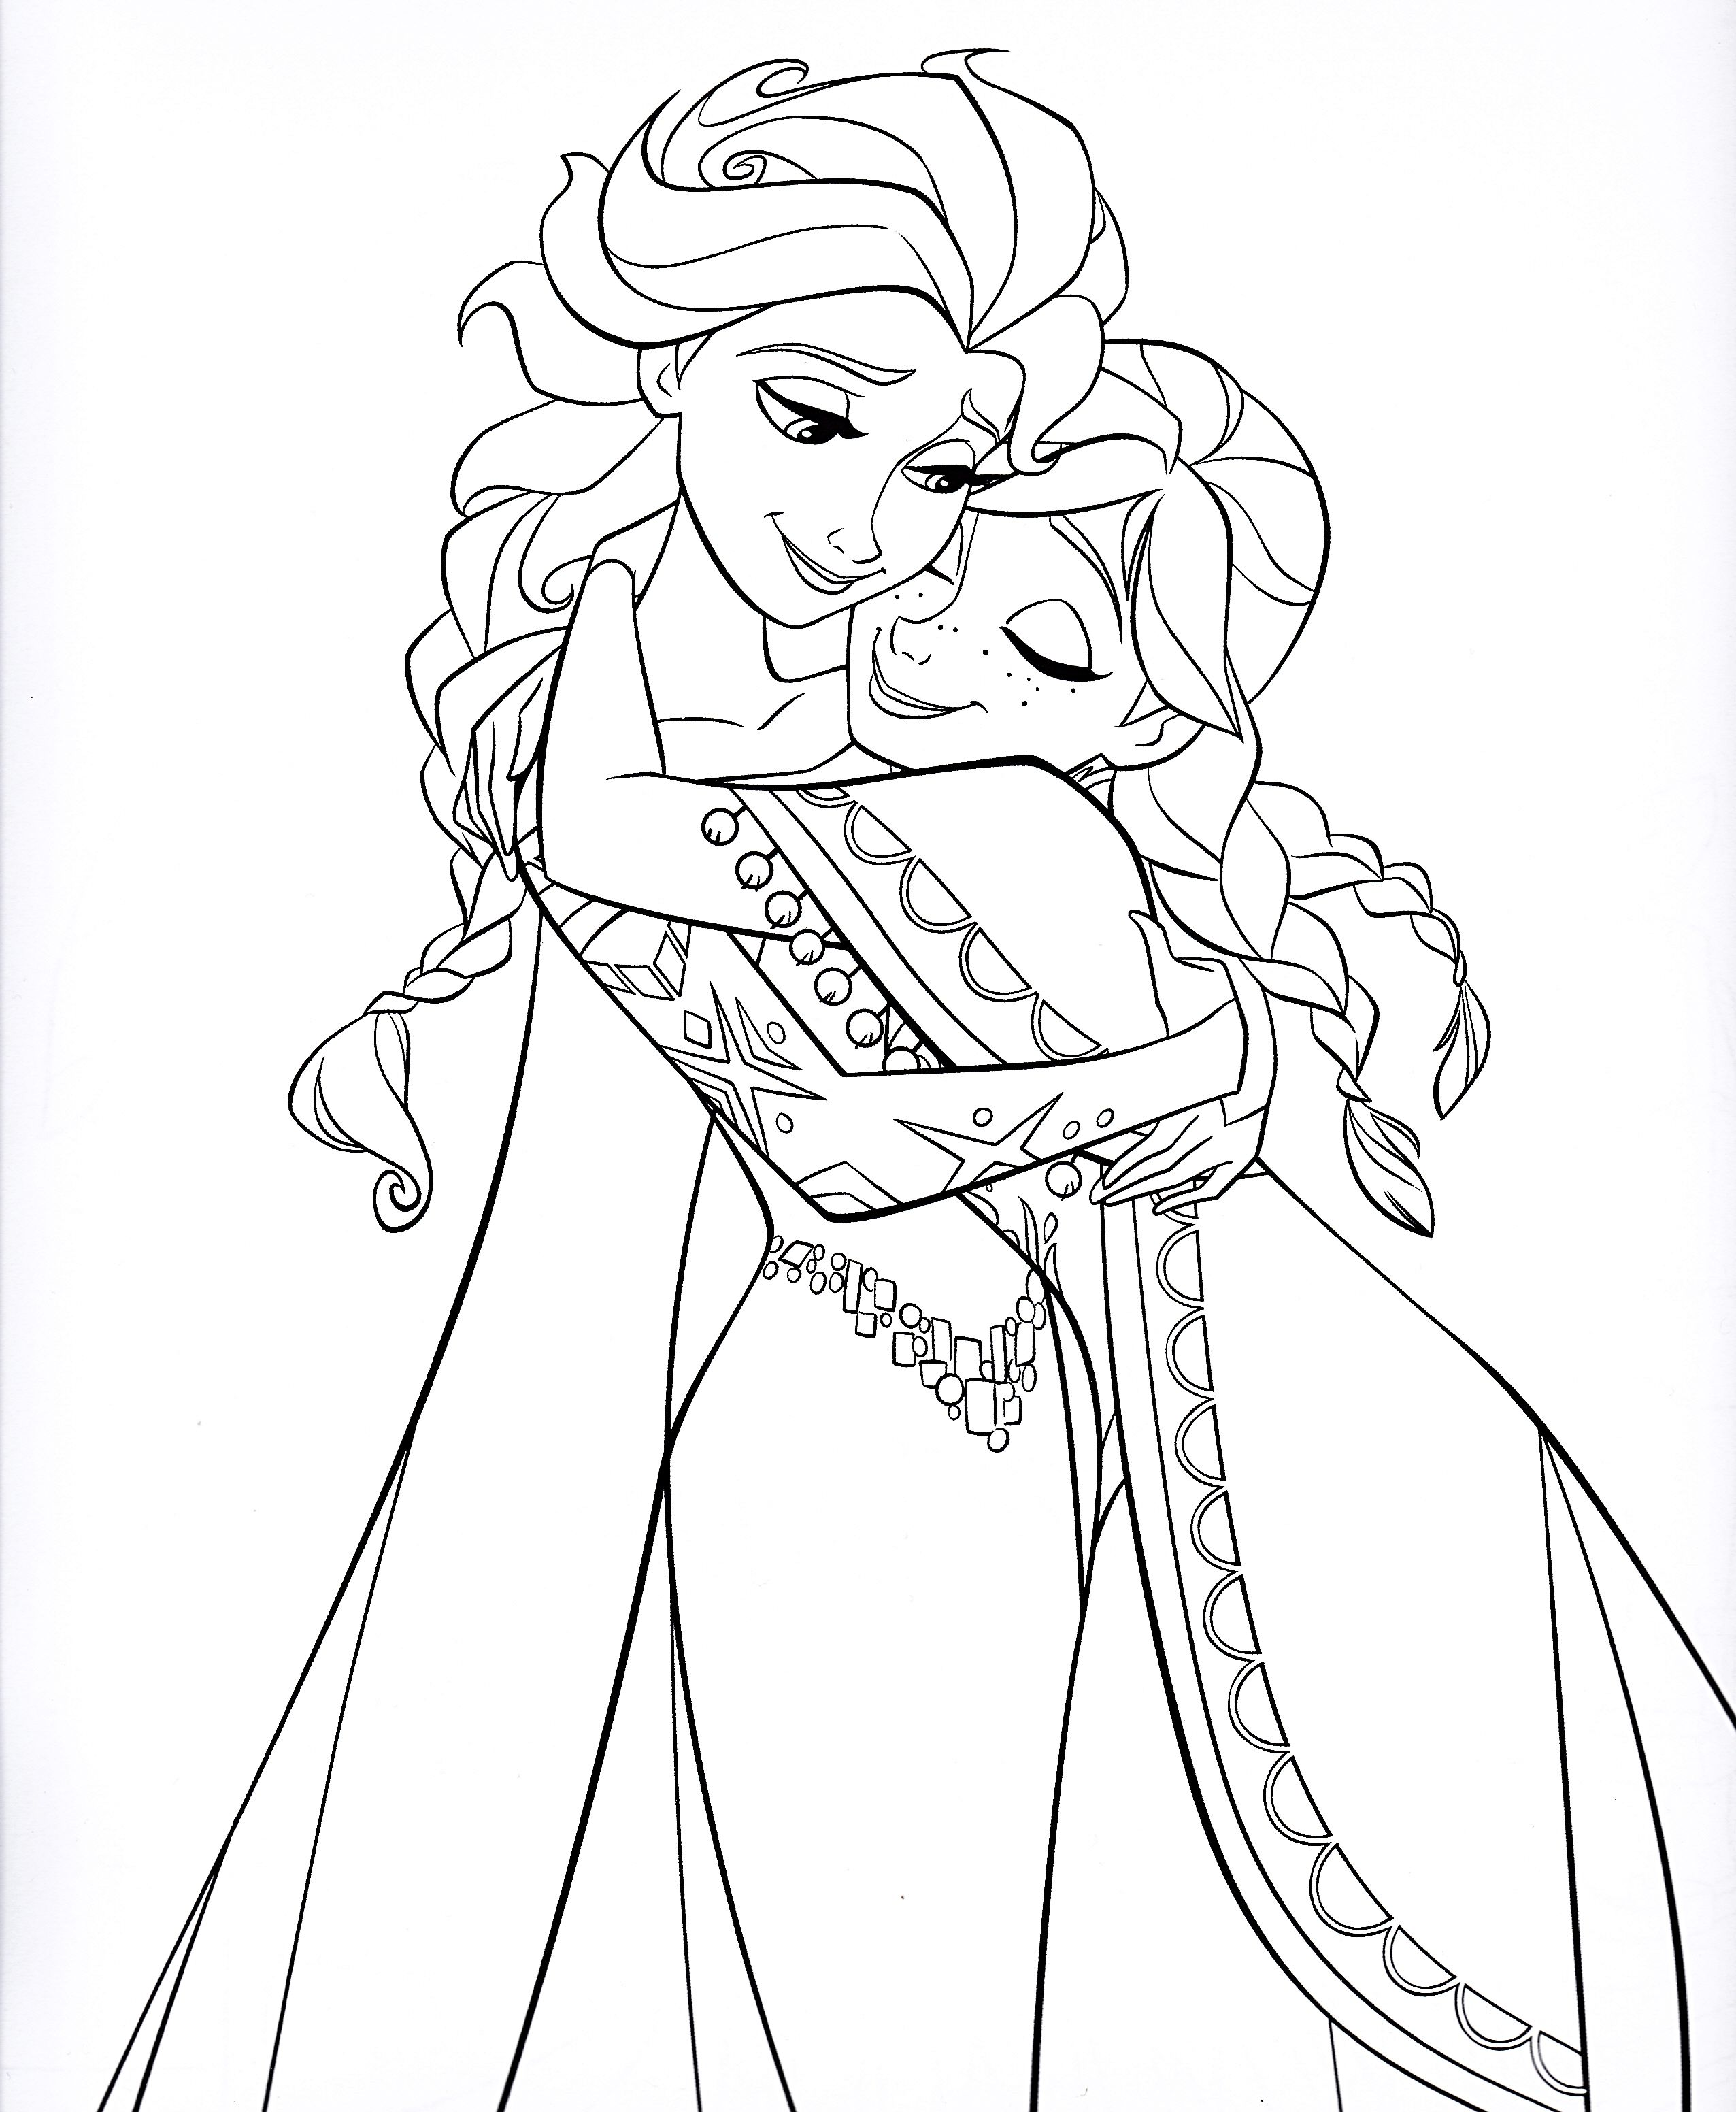 Coloring pages frozen - Disney Frozen Coloring Sheets Walt Disney Coloring Pages Queen Elsa Princess Anna